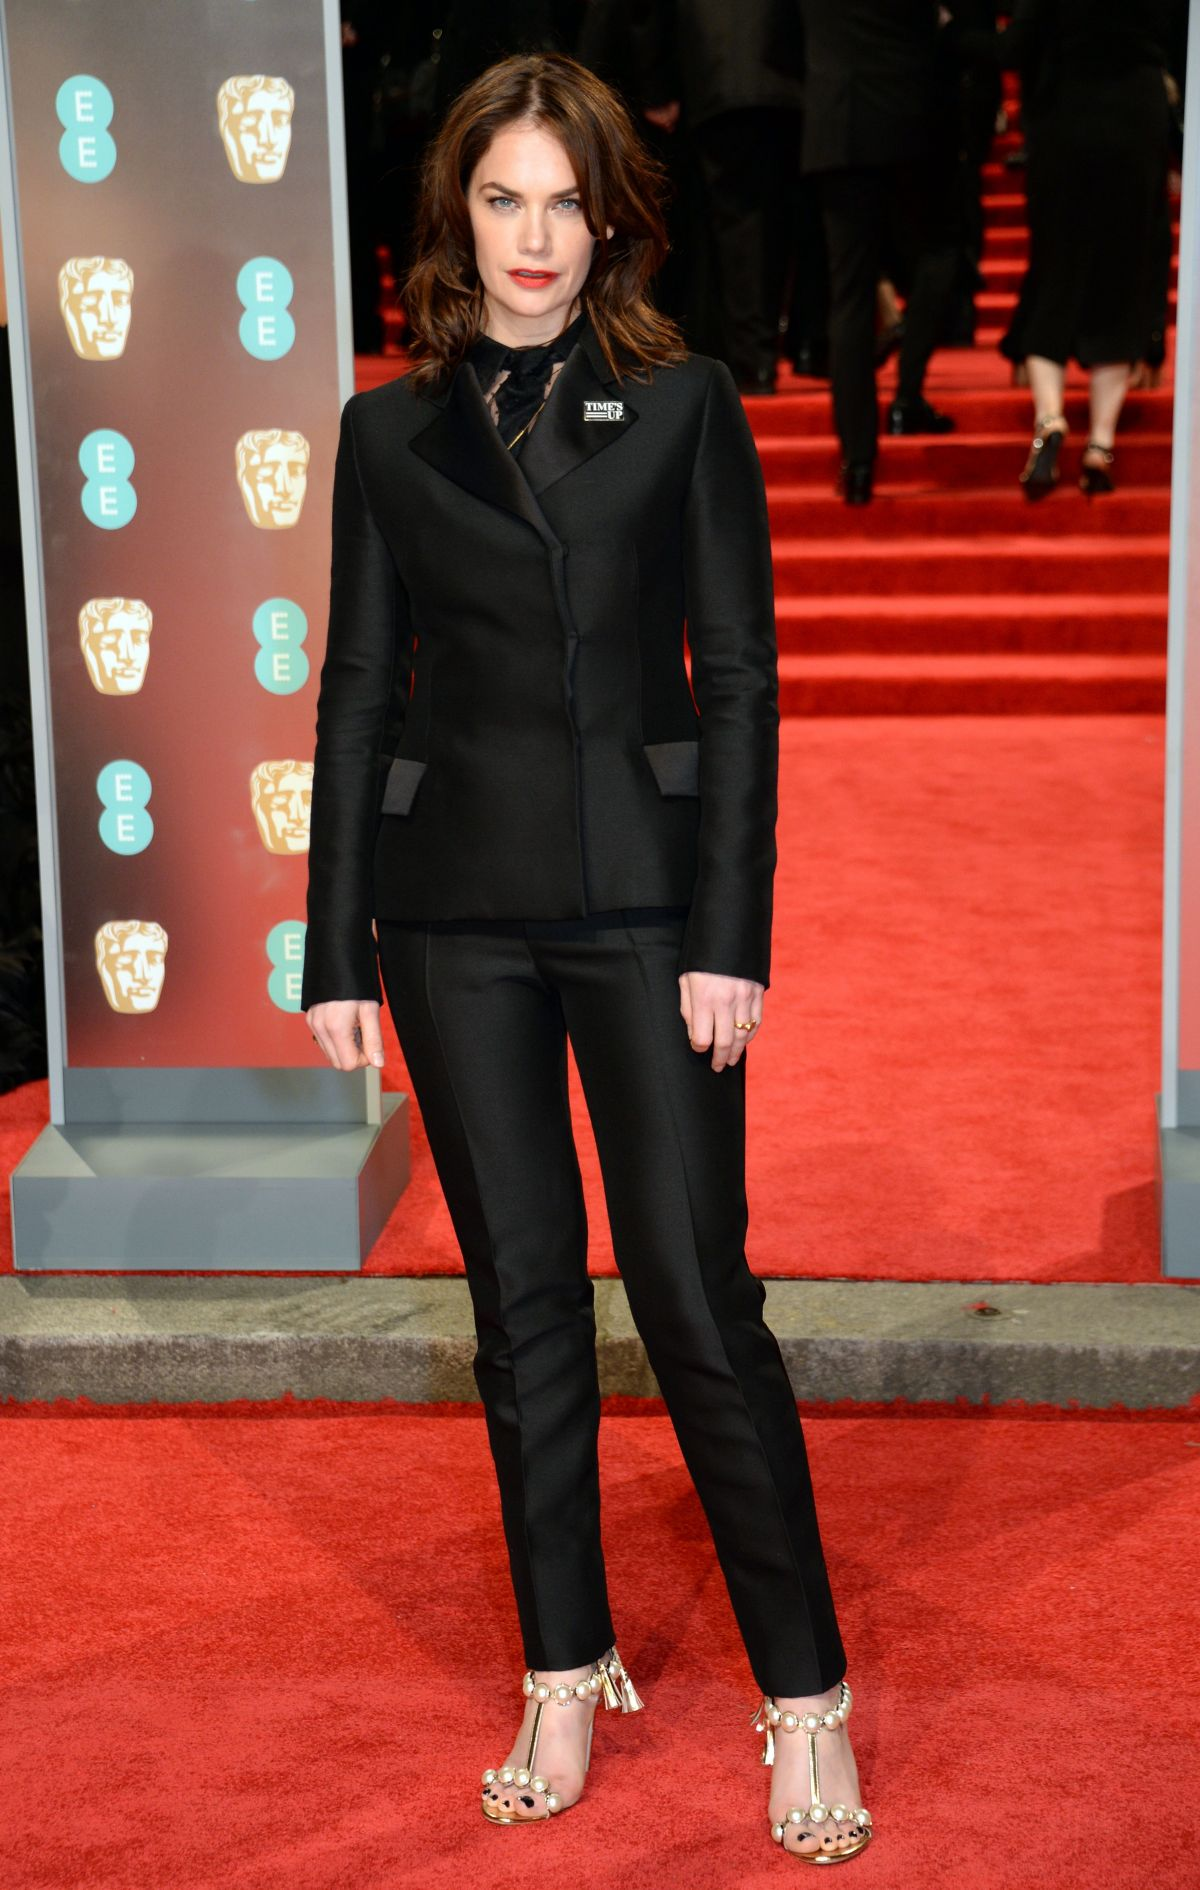 Ruth Wilson in sexy red carpet